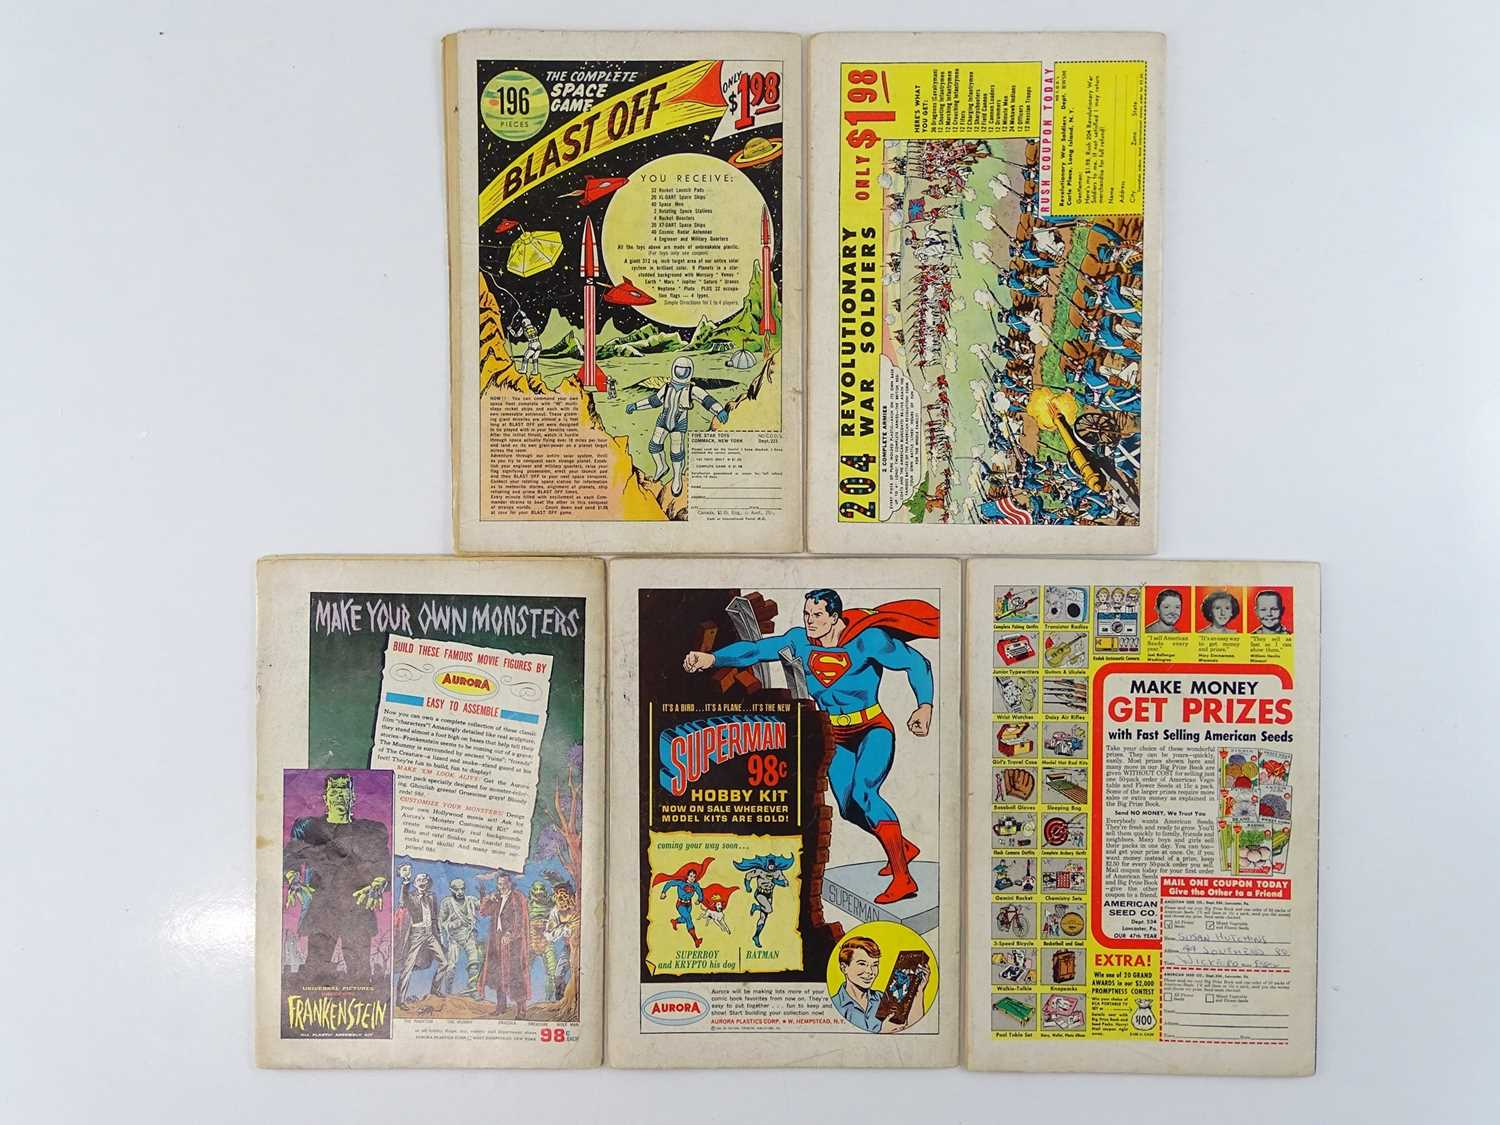 BLACKHAWK #187, 189, 190, 203, 206 - (5 in Lot) - (1963/65 - DC - UK Cover Price) - Includes - Image 2 of 2